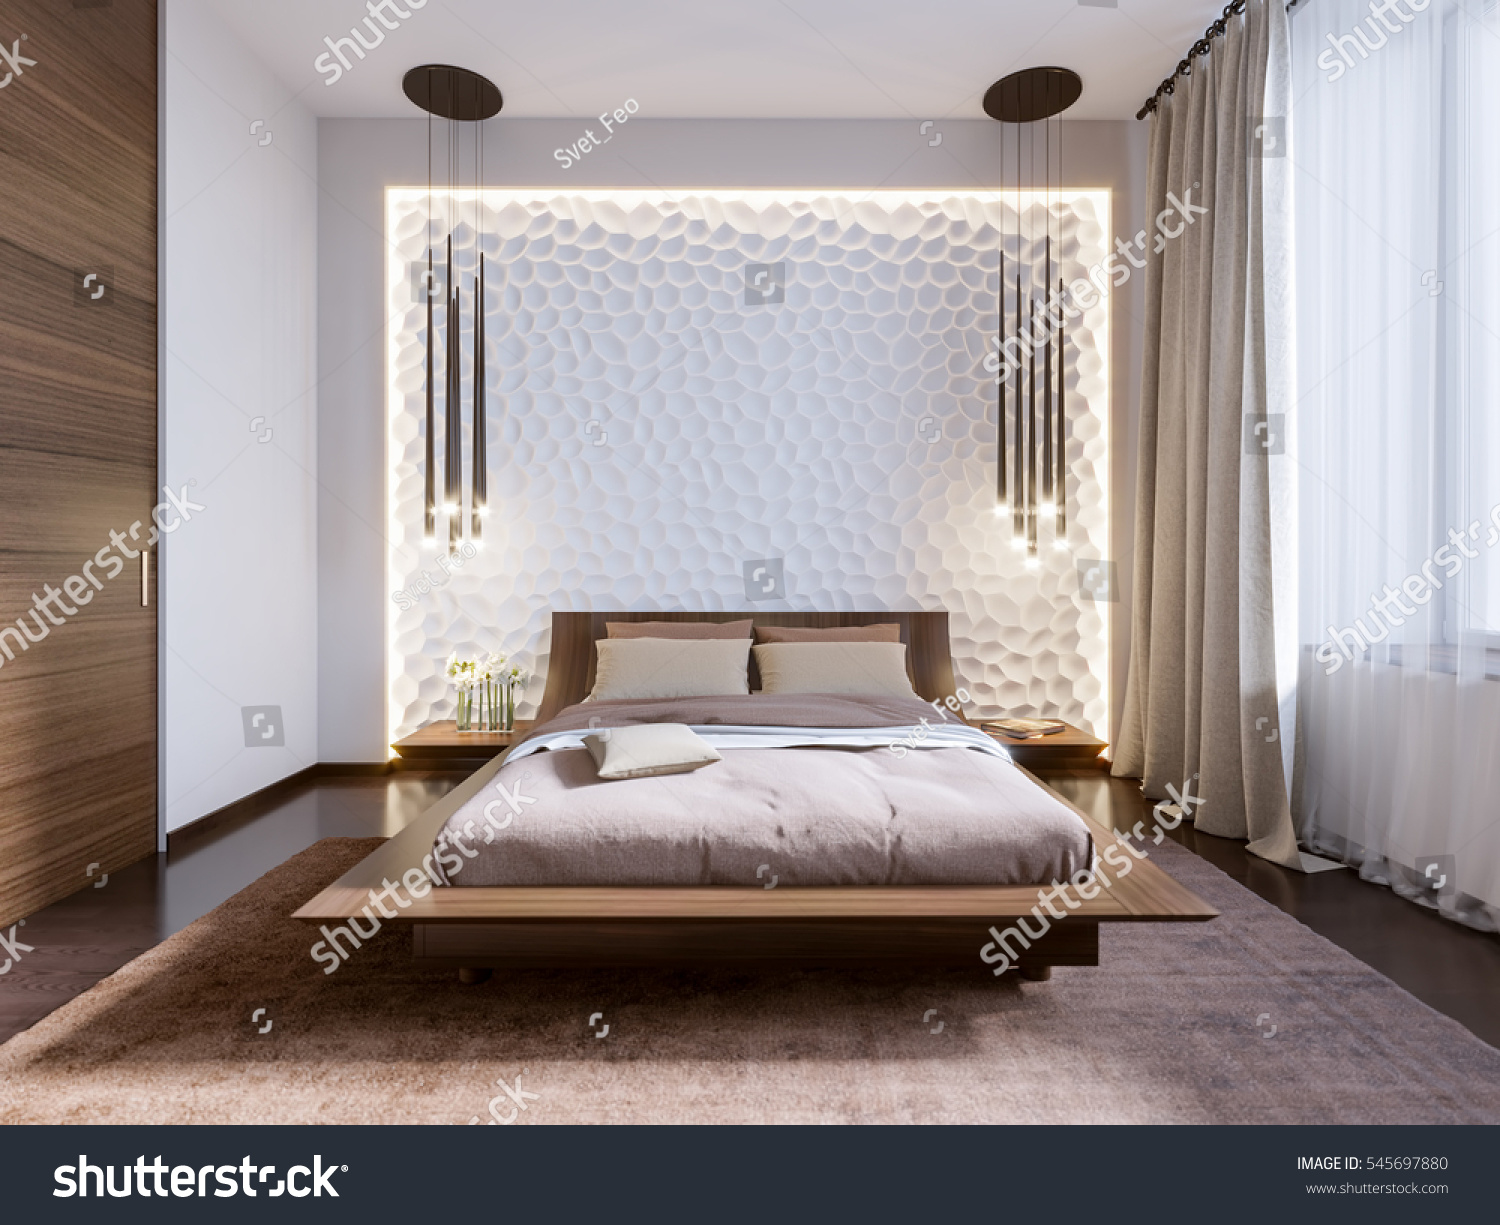 Modern bedroom with 3D panels on the wall  3d render. Modern Bedroom 3d Panels On Wall Stock Illustration 545697880